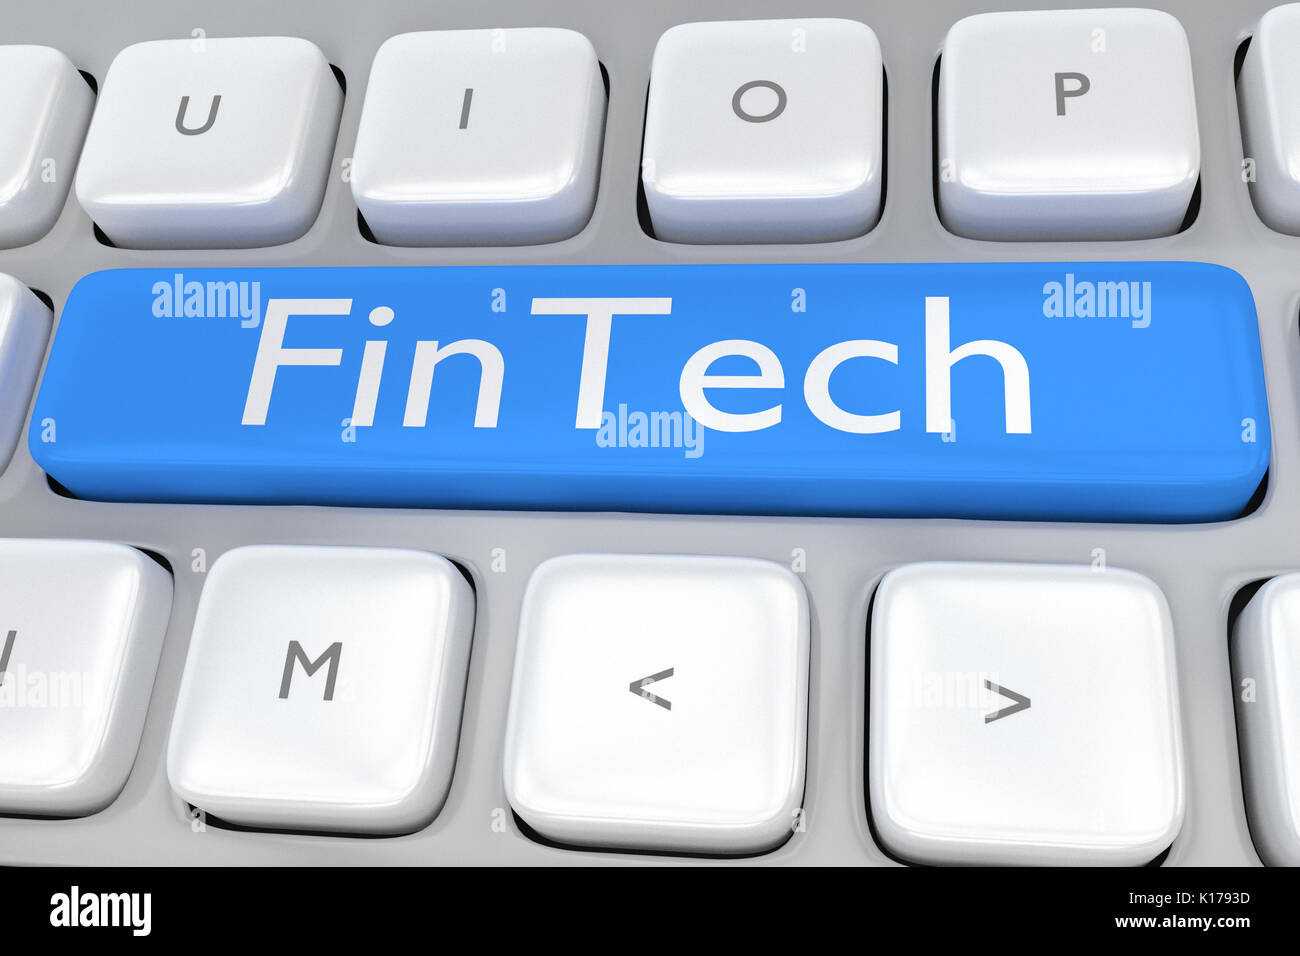 3D illustration of computer keyboard with the script 'Fintech' and location icon on pale blue button. Business concept. - Stock Image